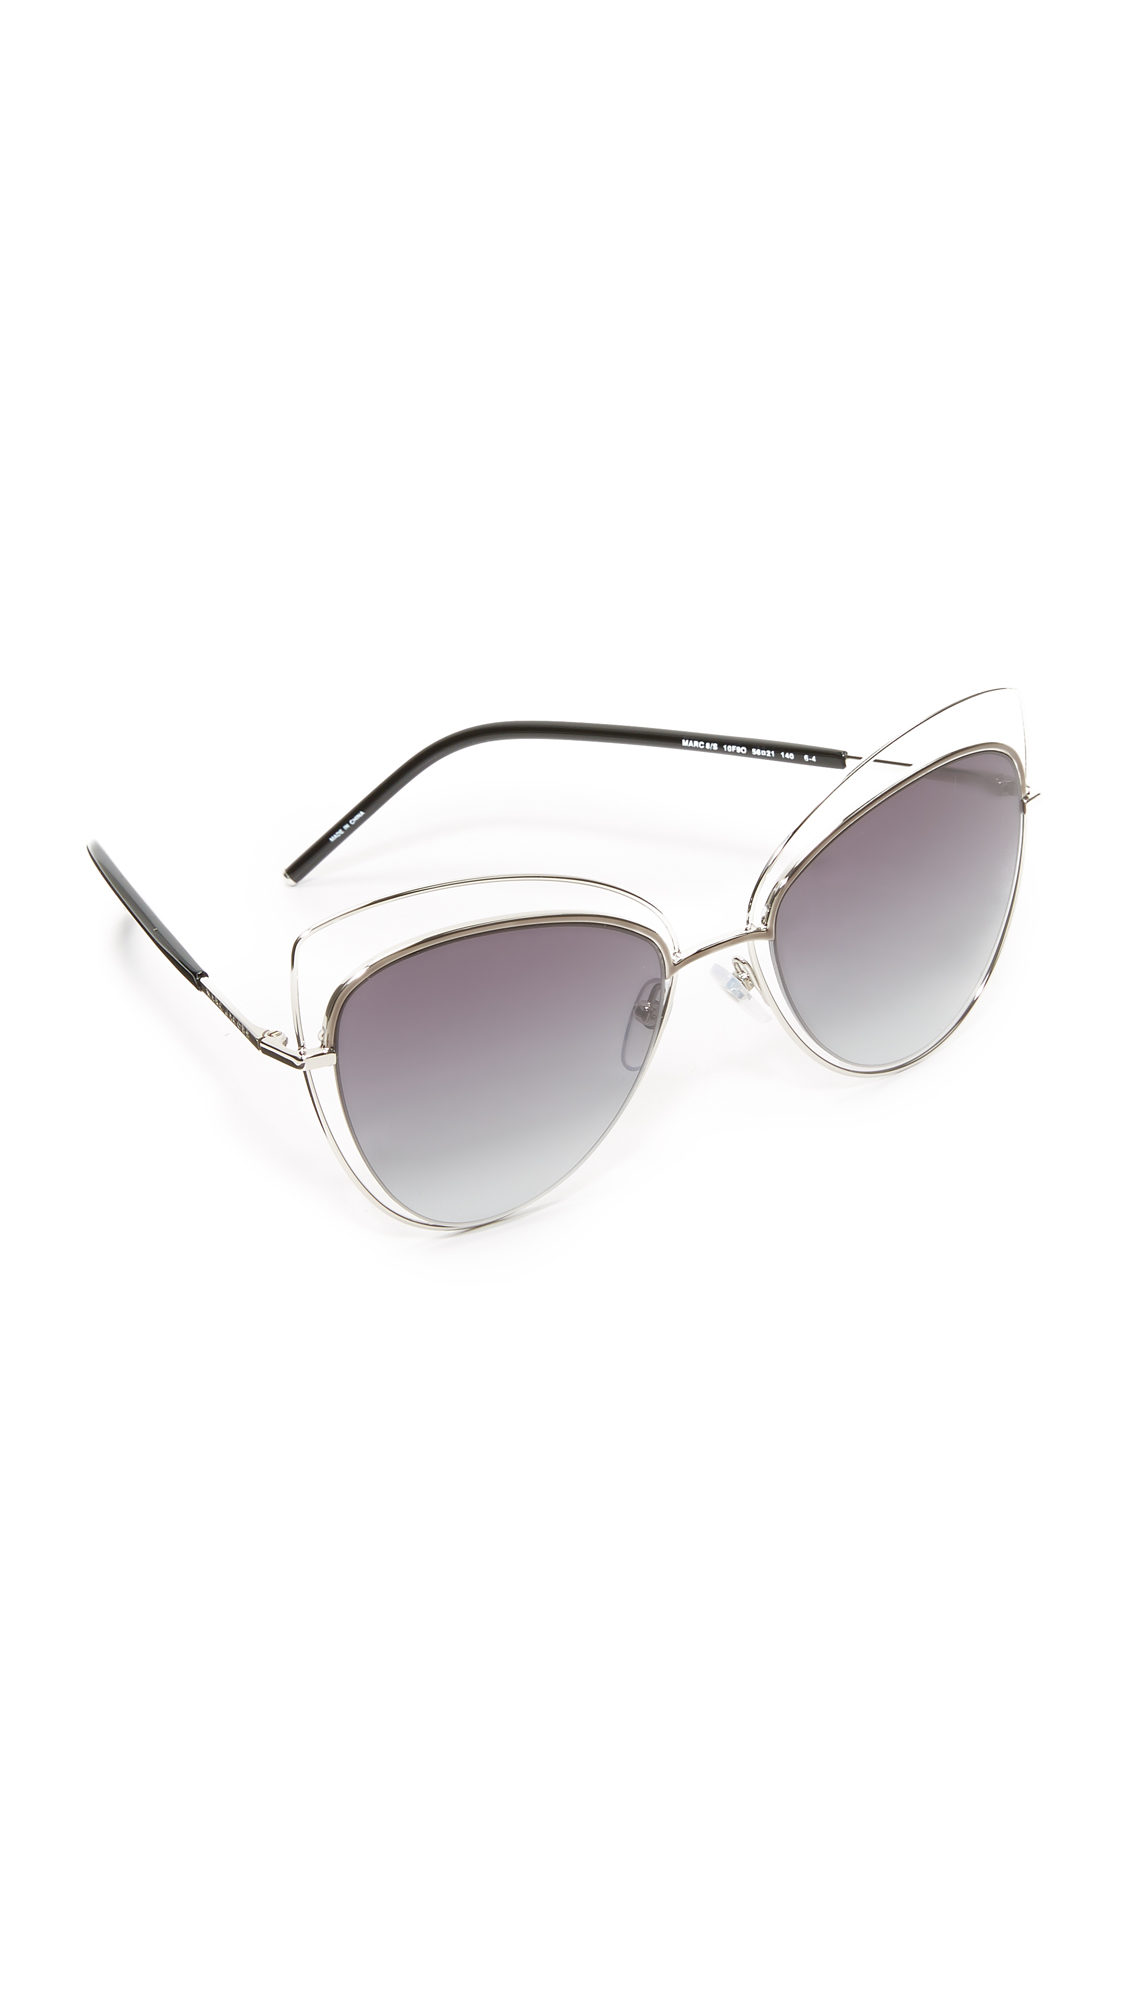 Cat eye Marc Jacobs sunglasses, updated with a second metal rim. Gradient lenses and sleek, metal tipped arms. Hard case and cleaning cloth included. Cateye frame. Non polarized lenses. Imported, China. Measurements Width: 5.5in / 14cm Height: 2.25